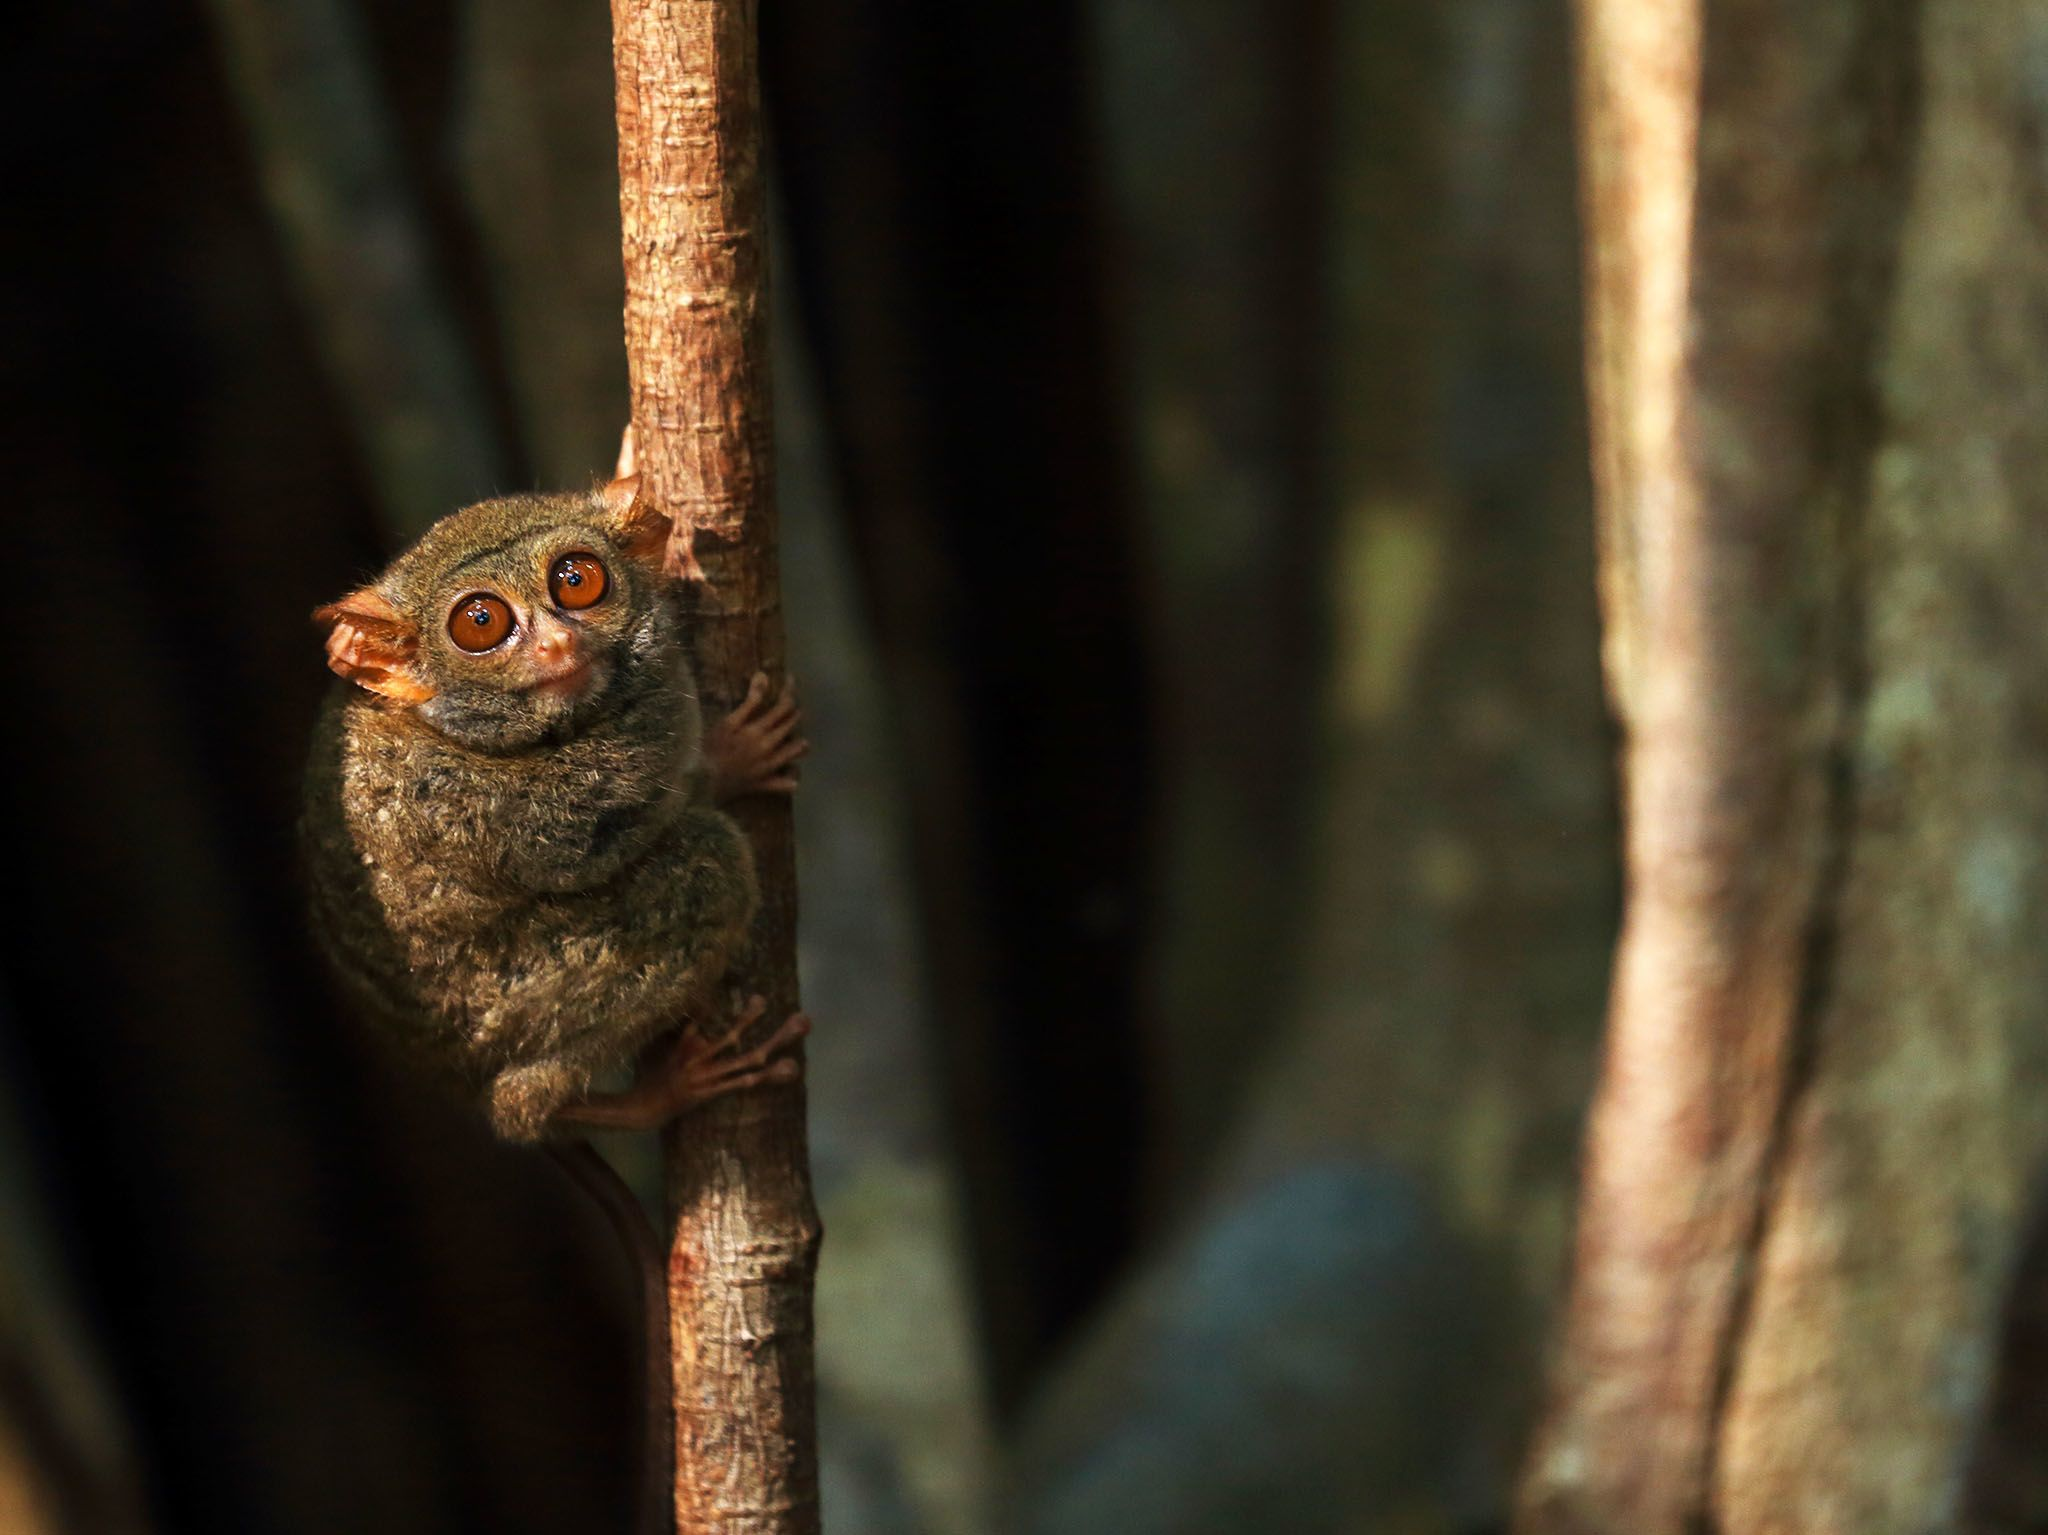 Indonesia:  Spectral Tarsier on sapling. These small primates weigh about 100 grams. This image... [Foto del giorno - settembre 2017]